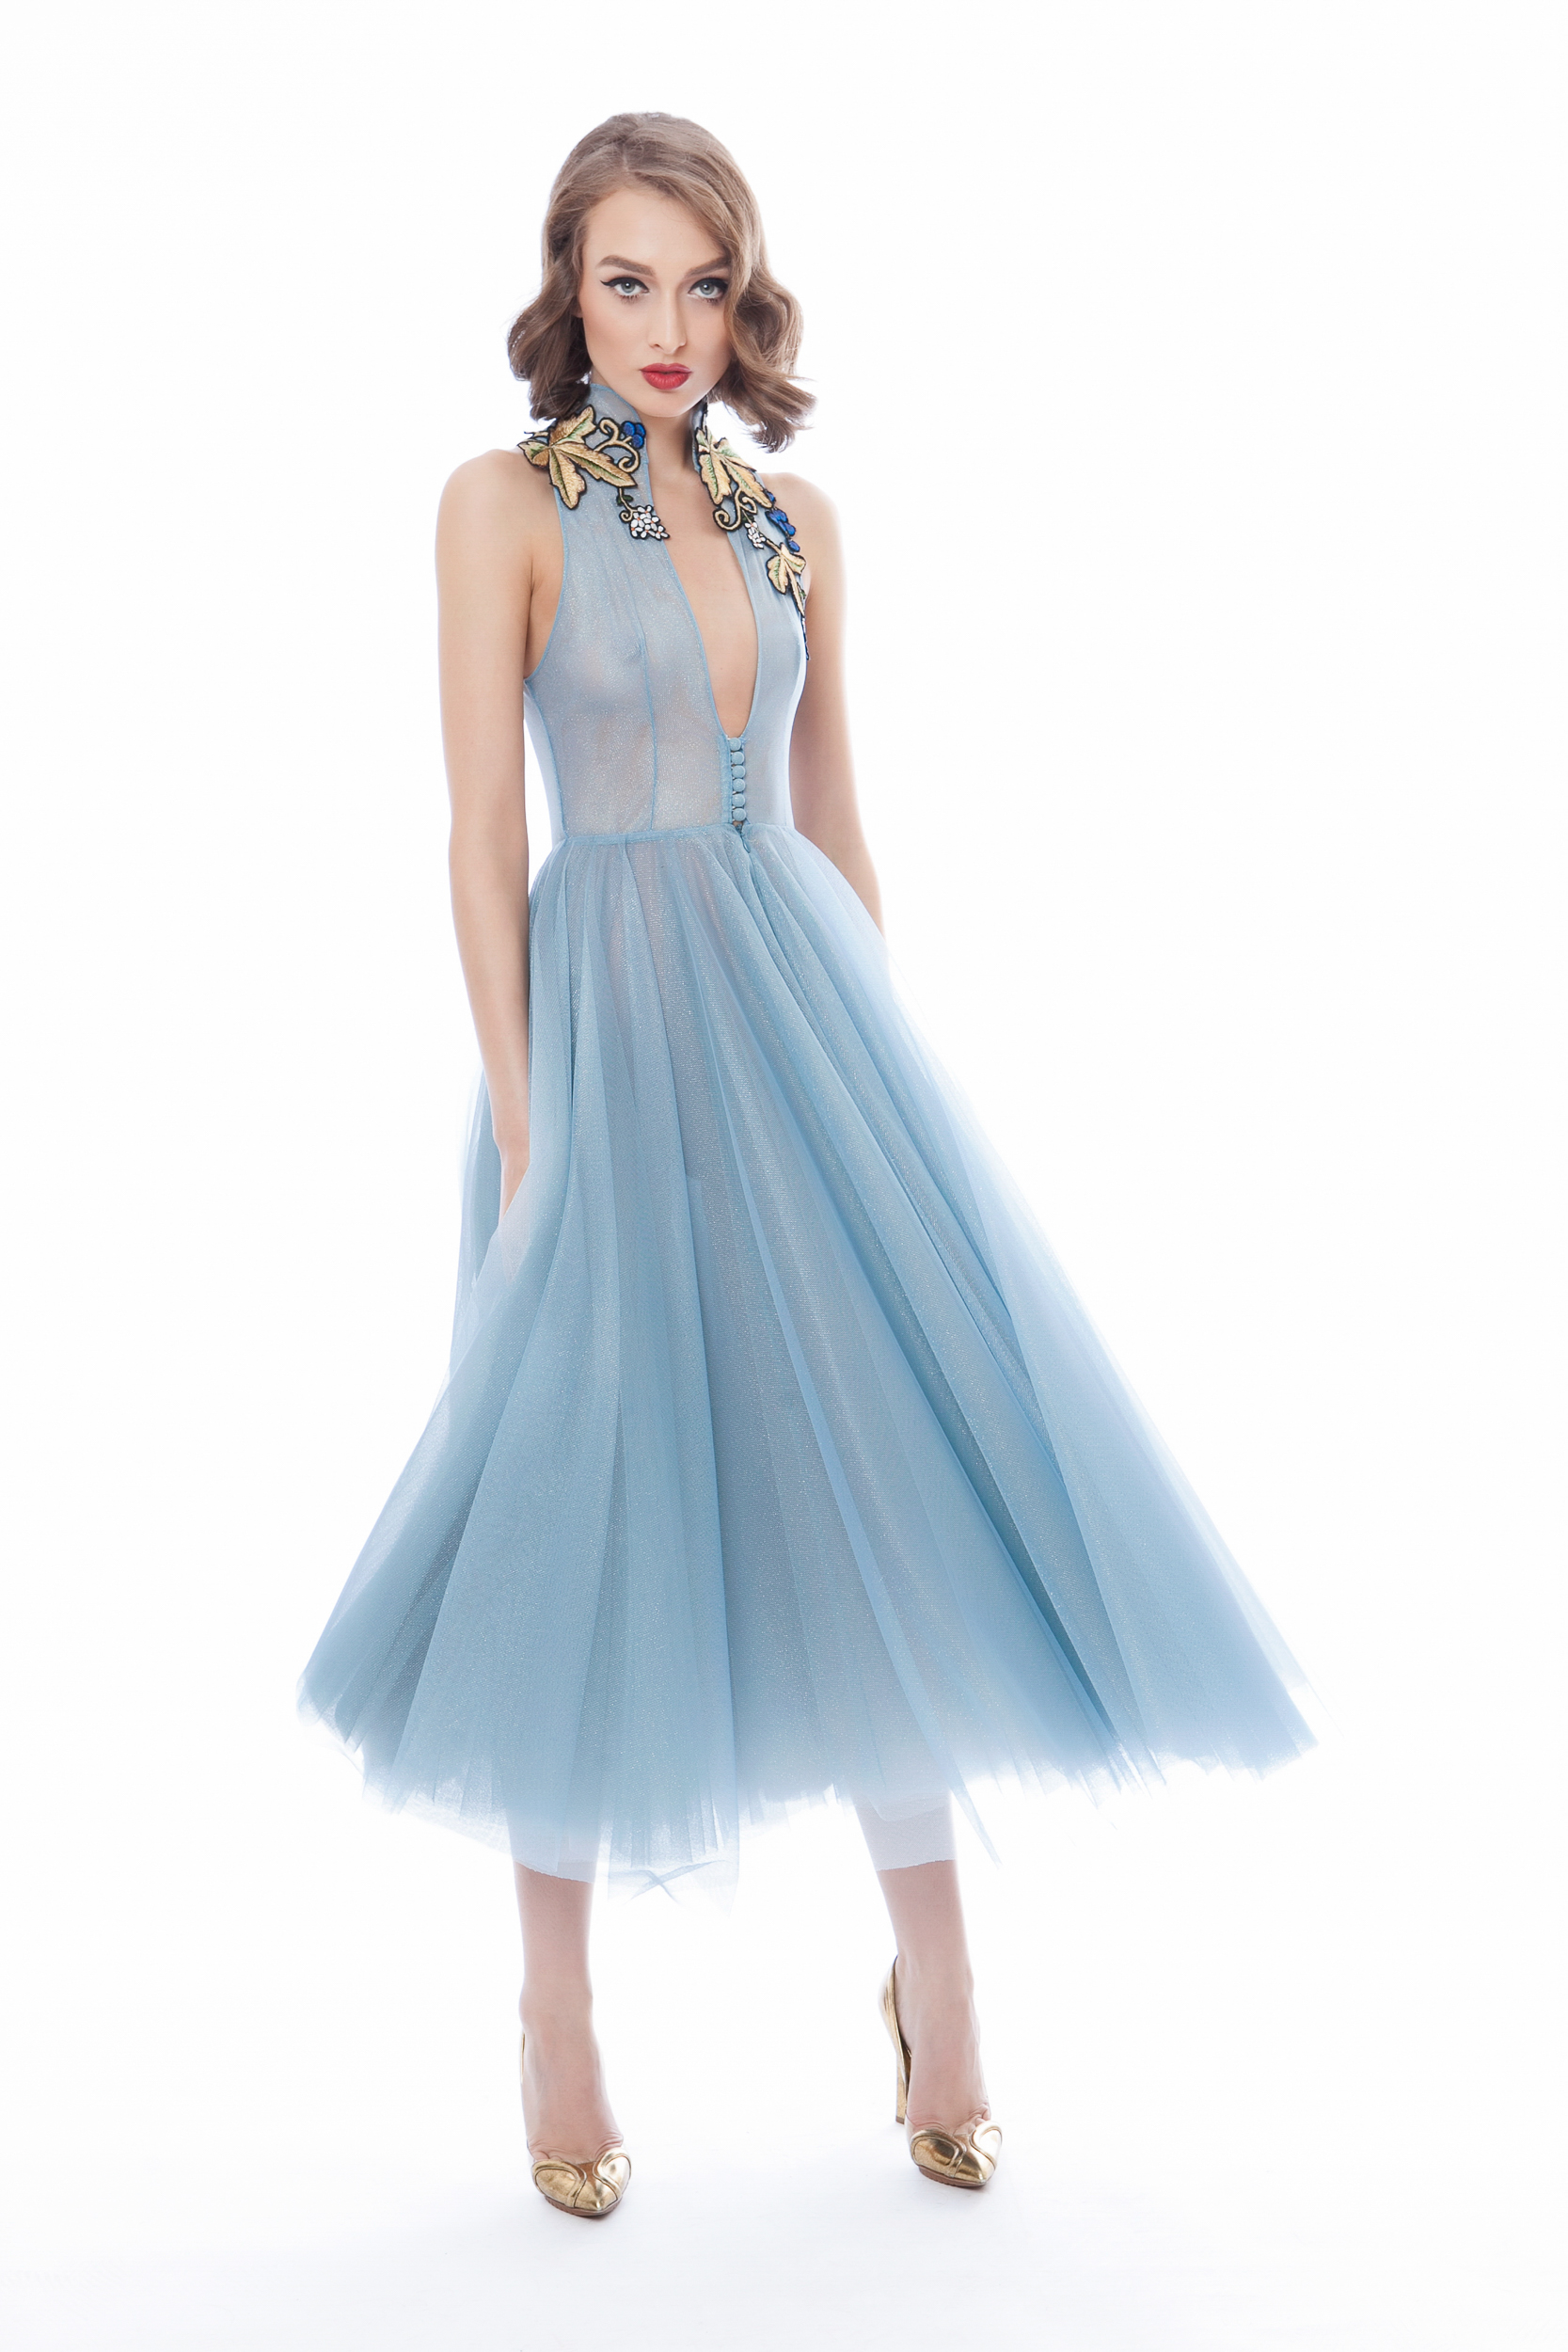 Tulle dress with handmade embroidery | Rozalia Bot